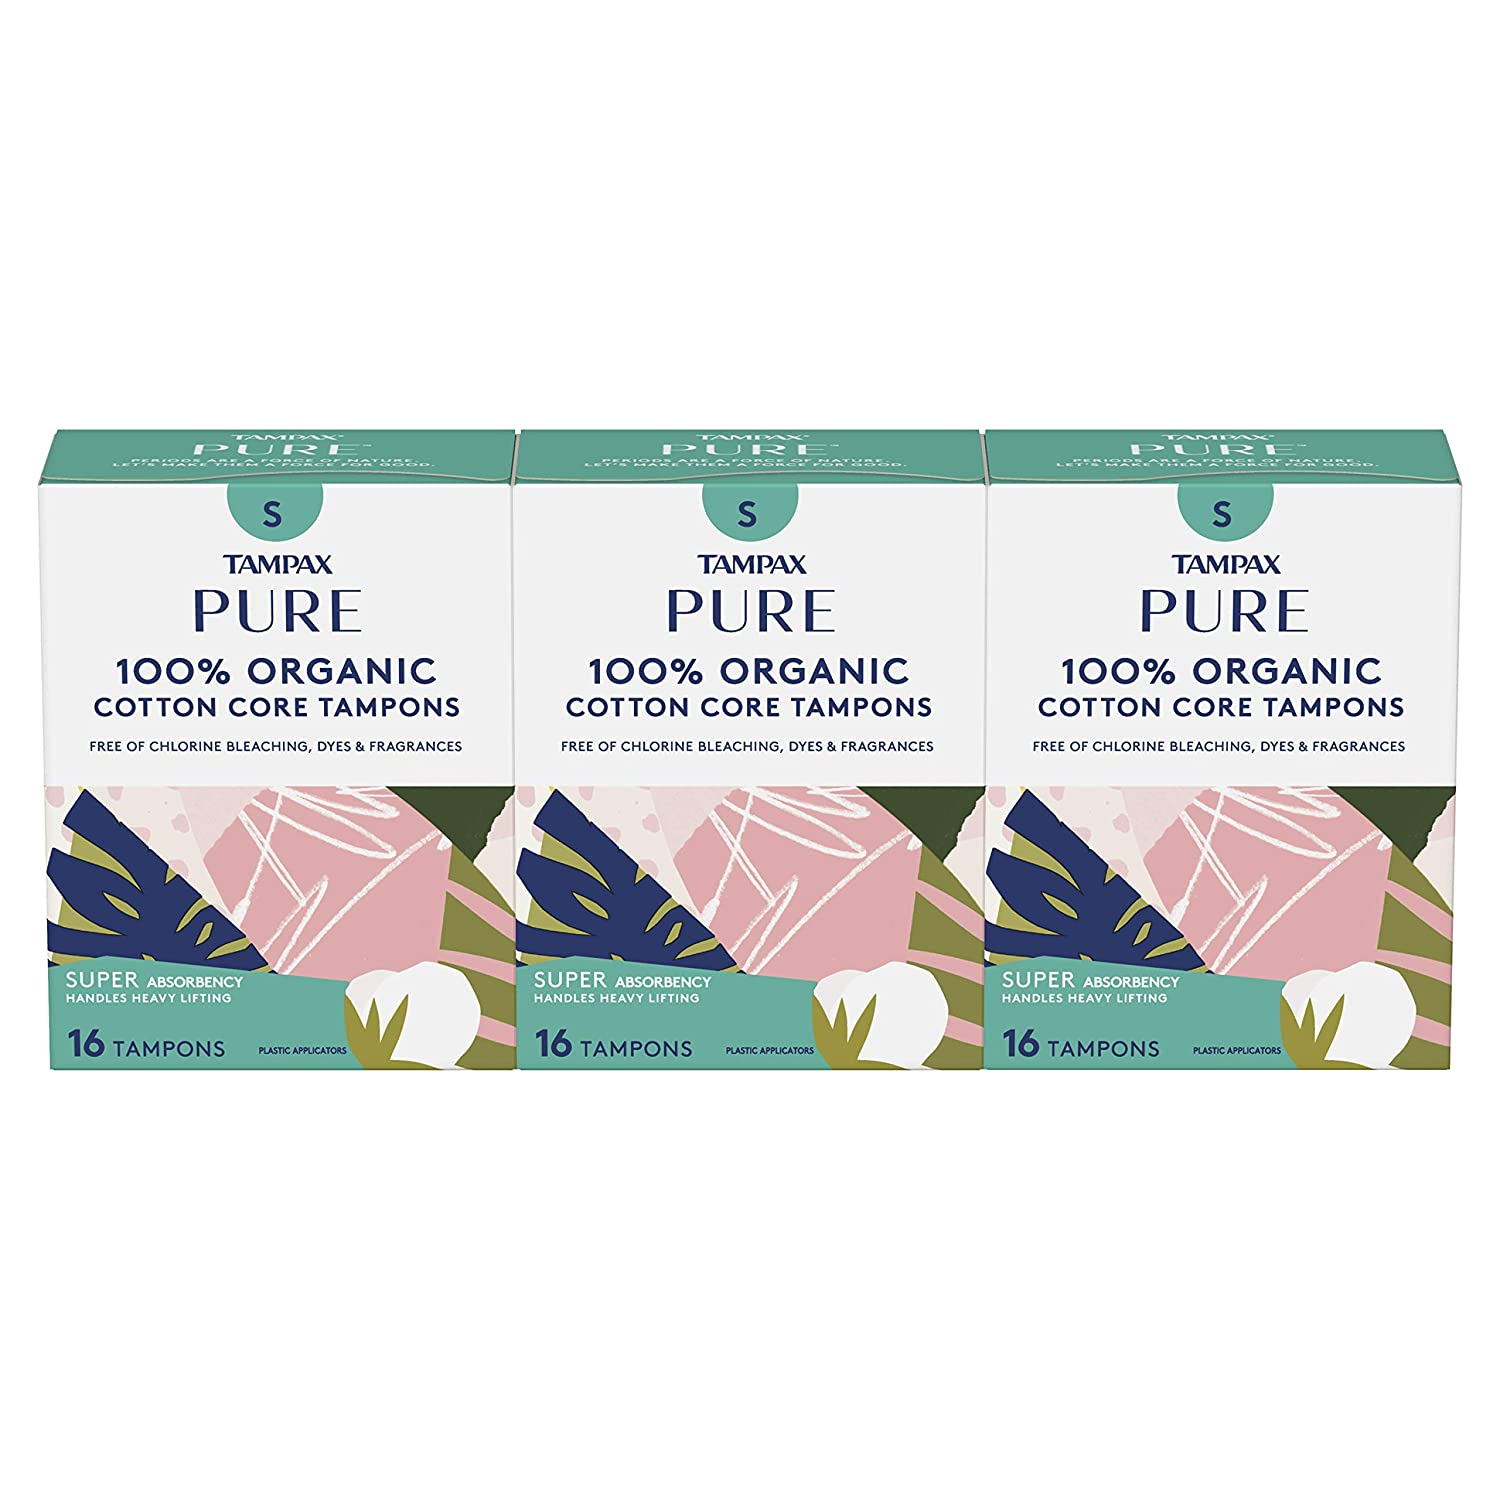 Tampax Pure Organic Tampons, Cotton & Chlroine-Free, Super Absorbency, Unscented, 16 Count - Pack of 3 (48 Count Total)